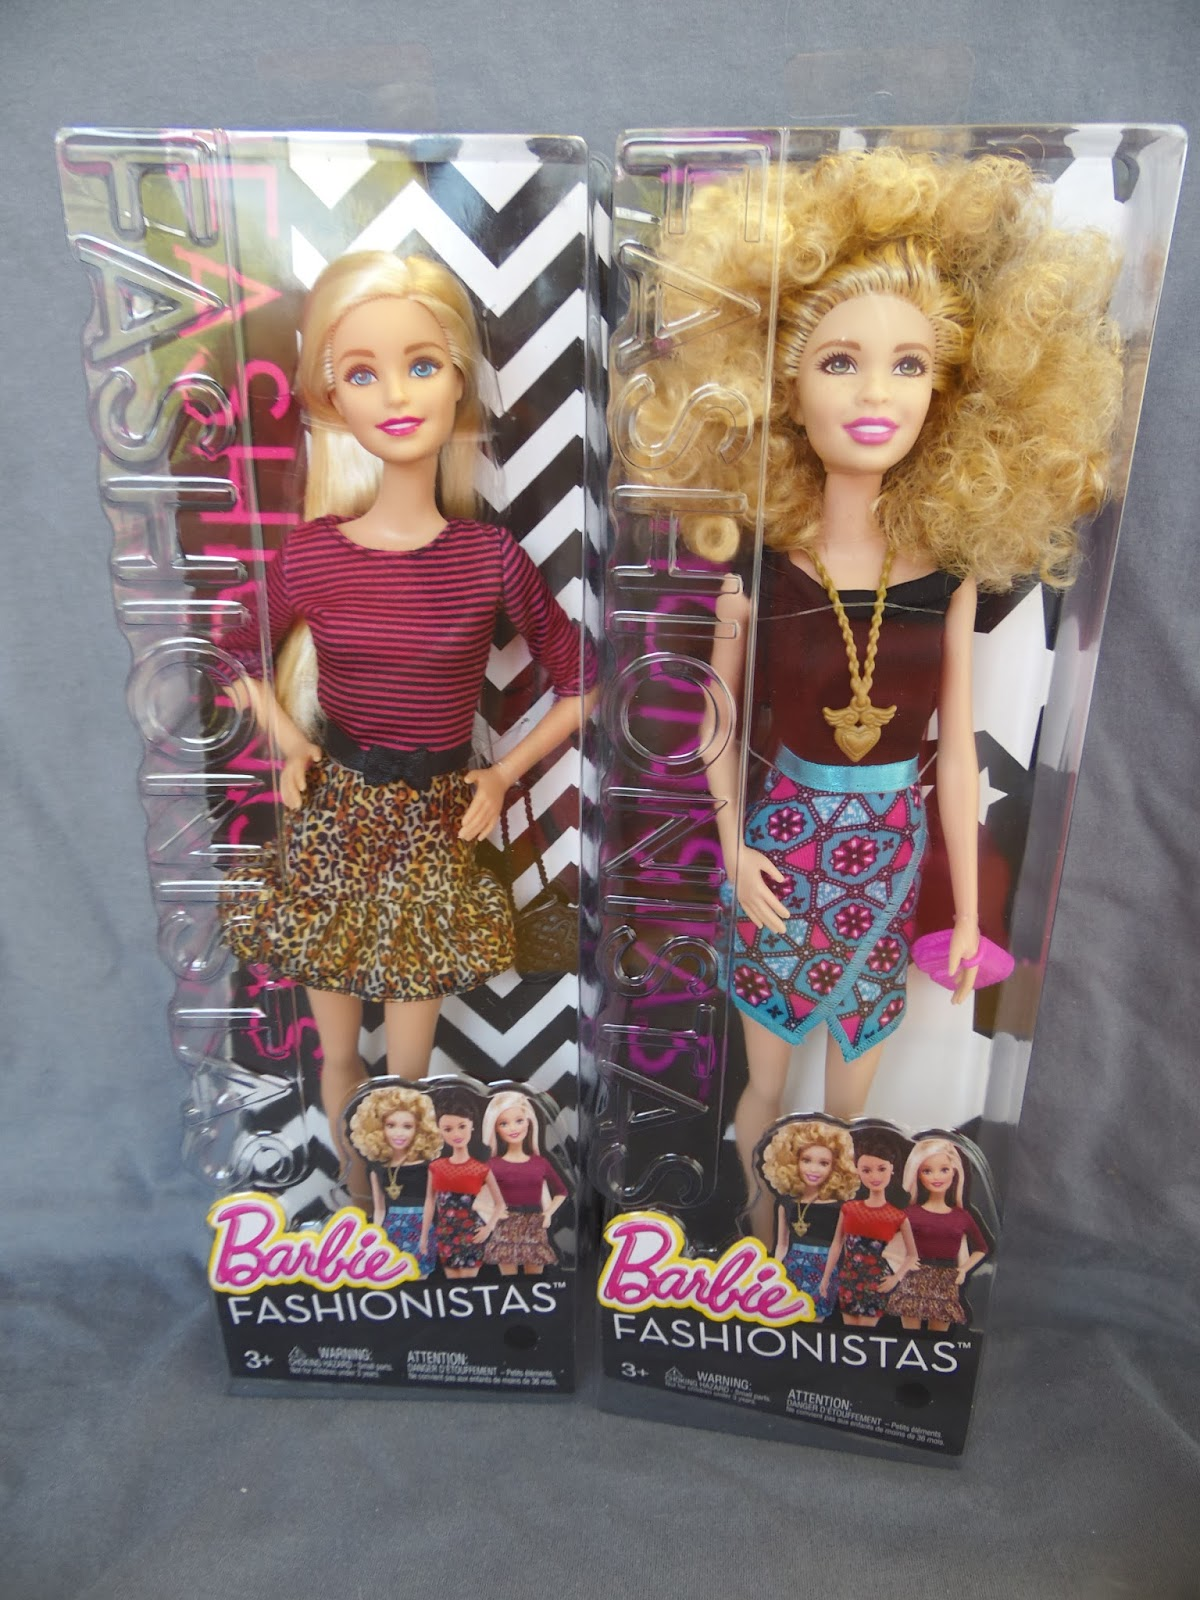 Barbie Fashionistas 2015 Review the word quot Fashionistas quot